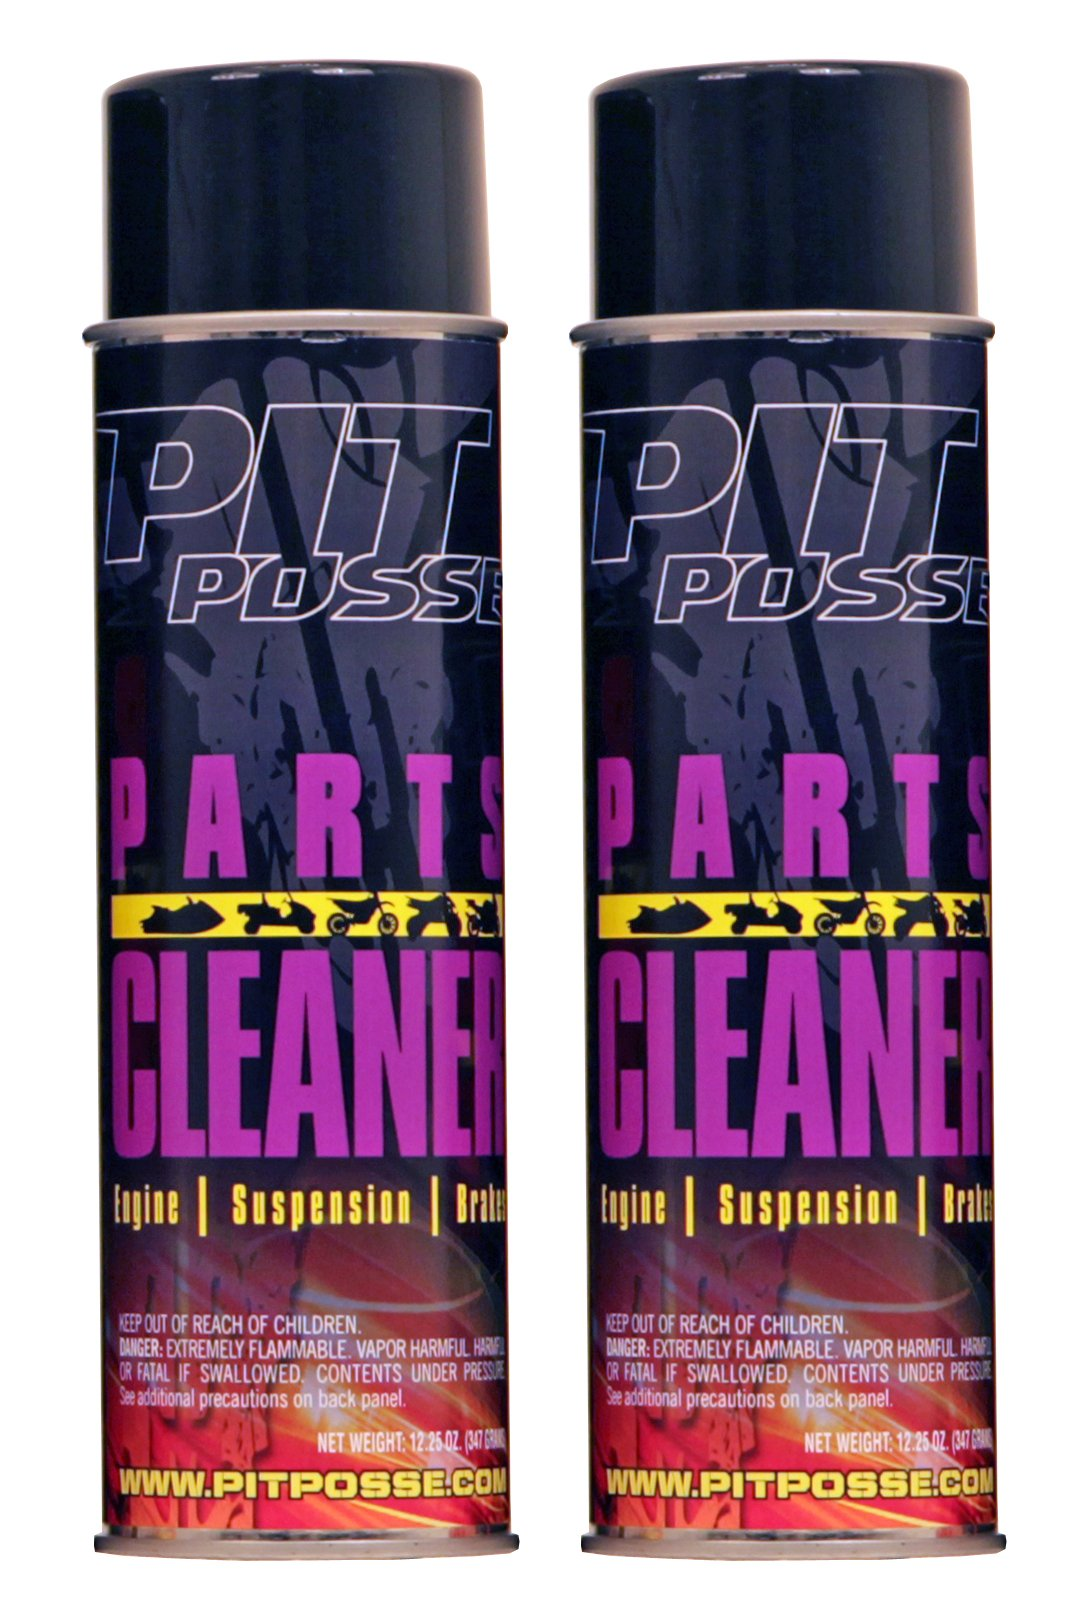 Pit Posse PP3231-2 2 12.25 Oz Cans Of Parts And Brake Cleaner Motorcycle ATV Dirt Bike Made In USA by Pit Posse